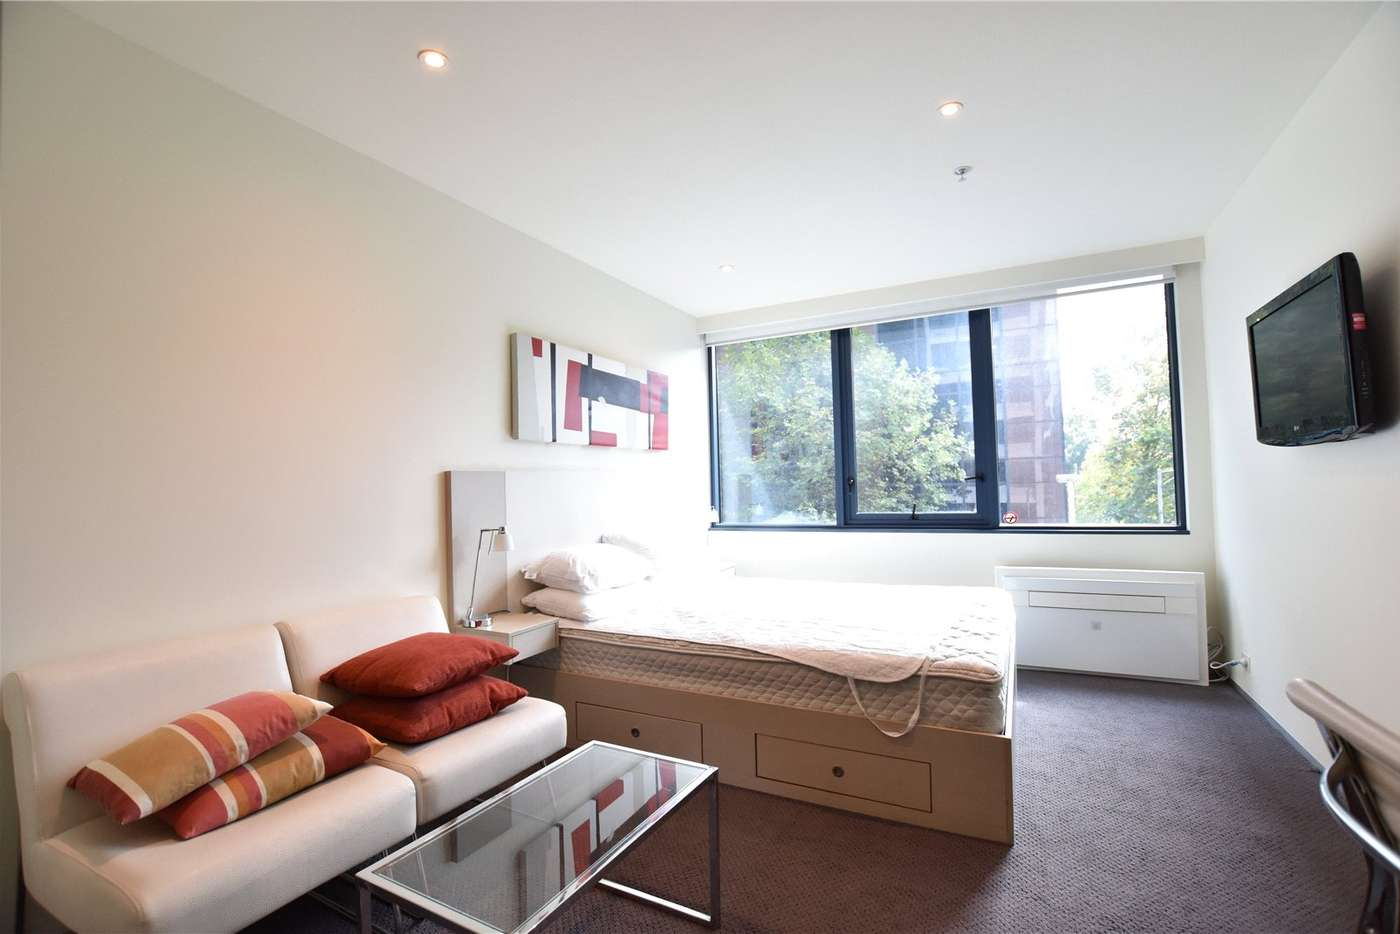 Main view of Homely studio listing, 306/181 ABeckett Street, Melbourne VIC 3000